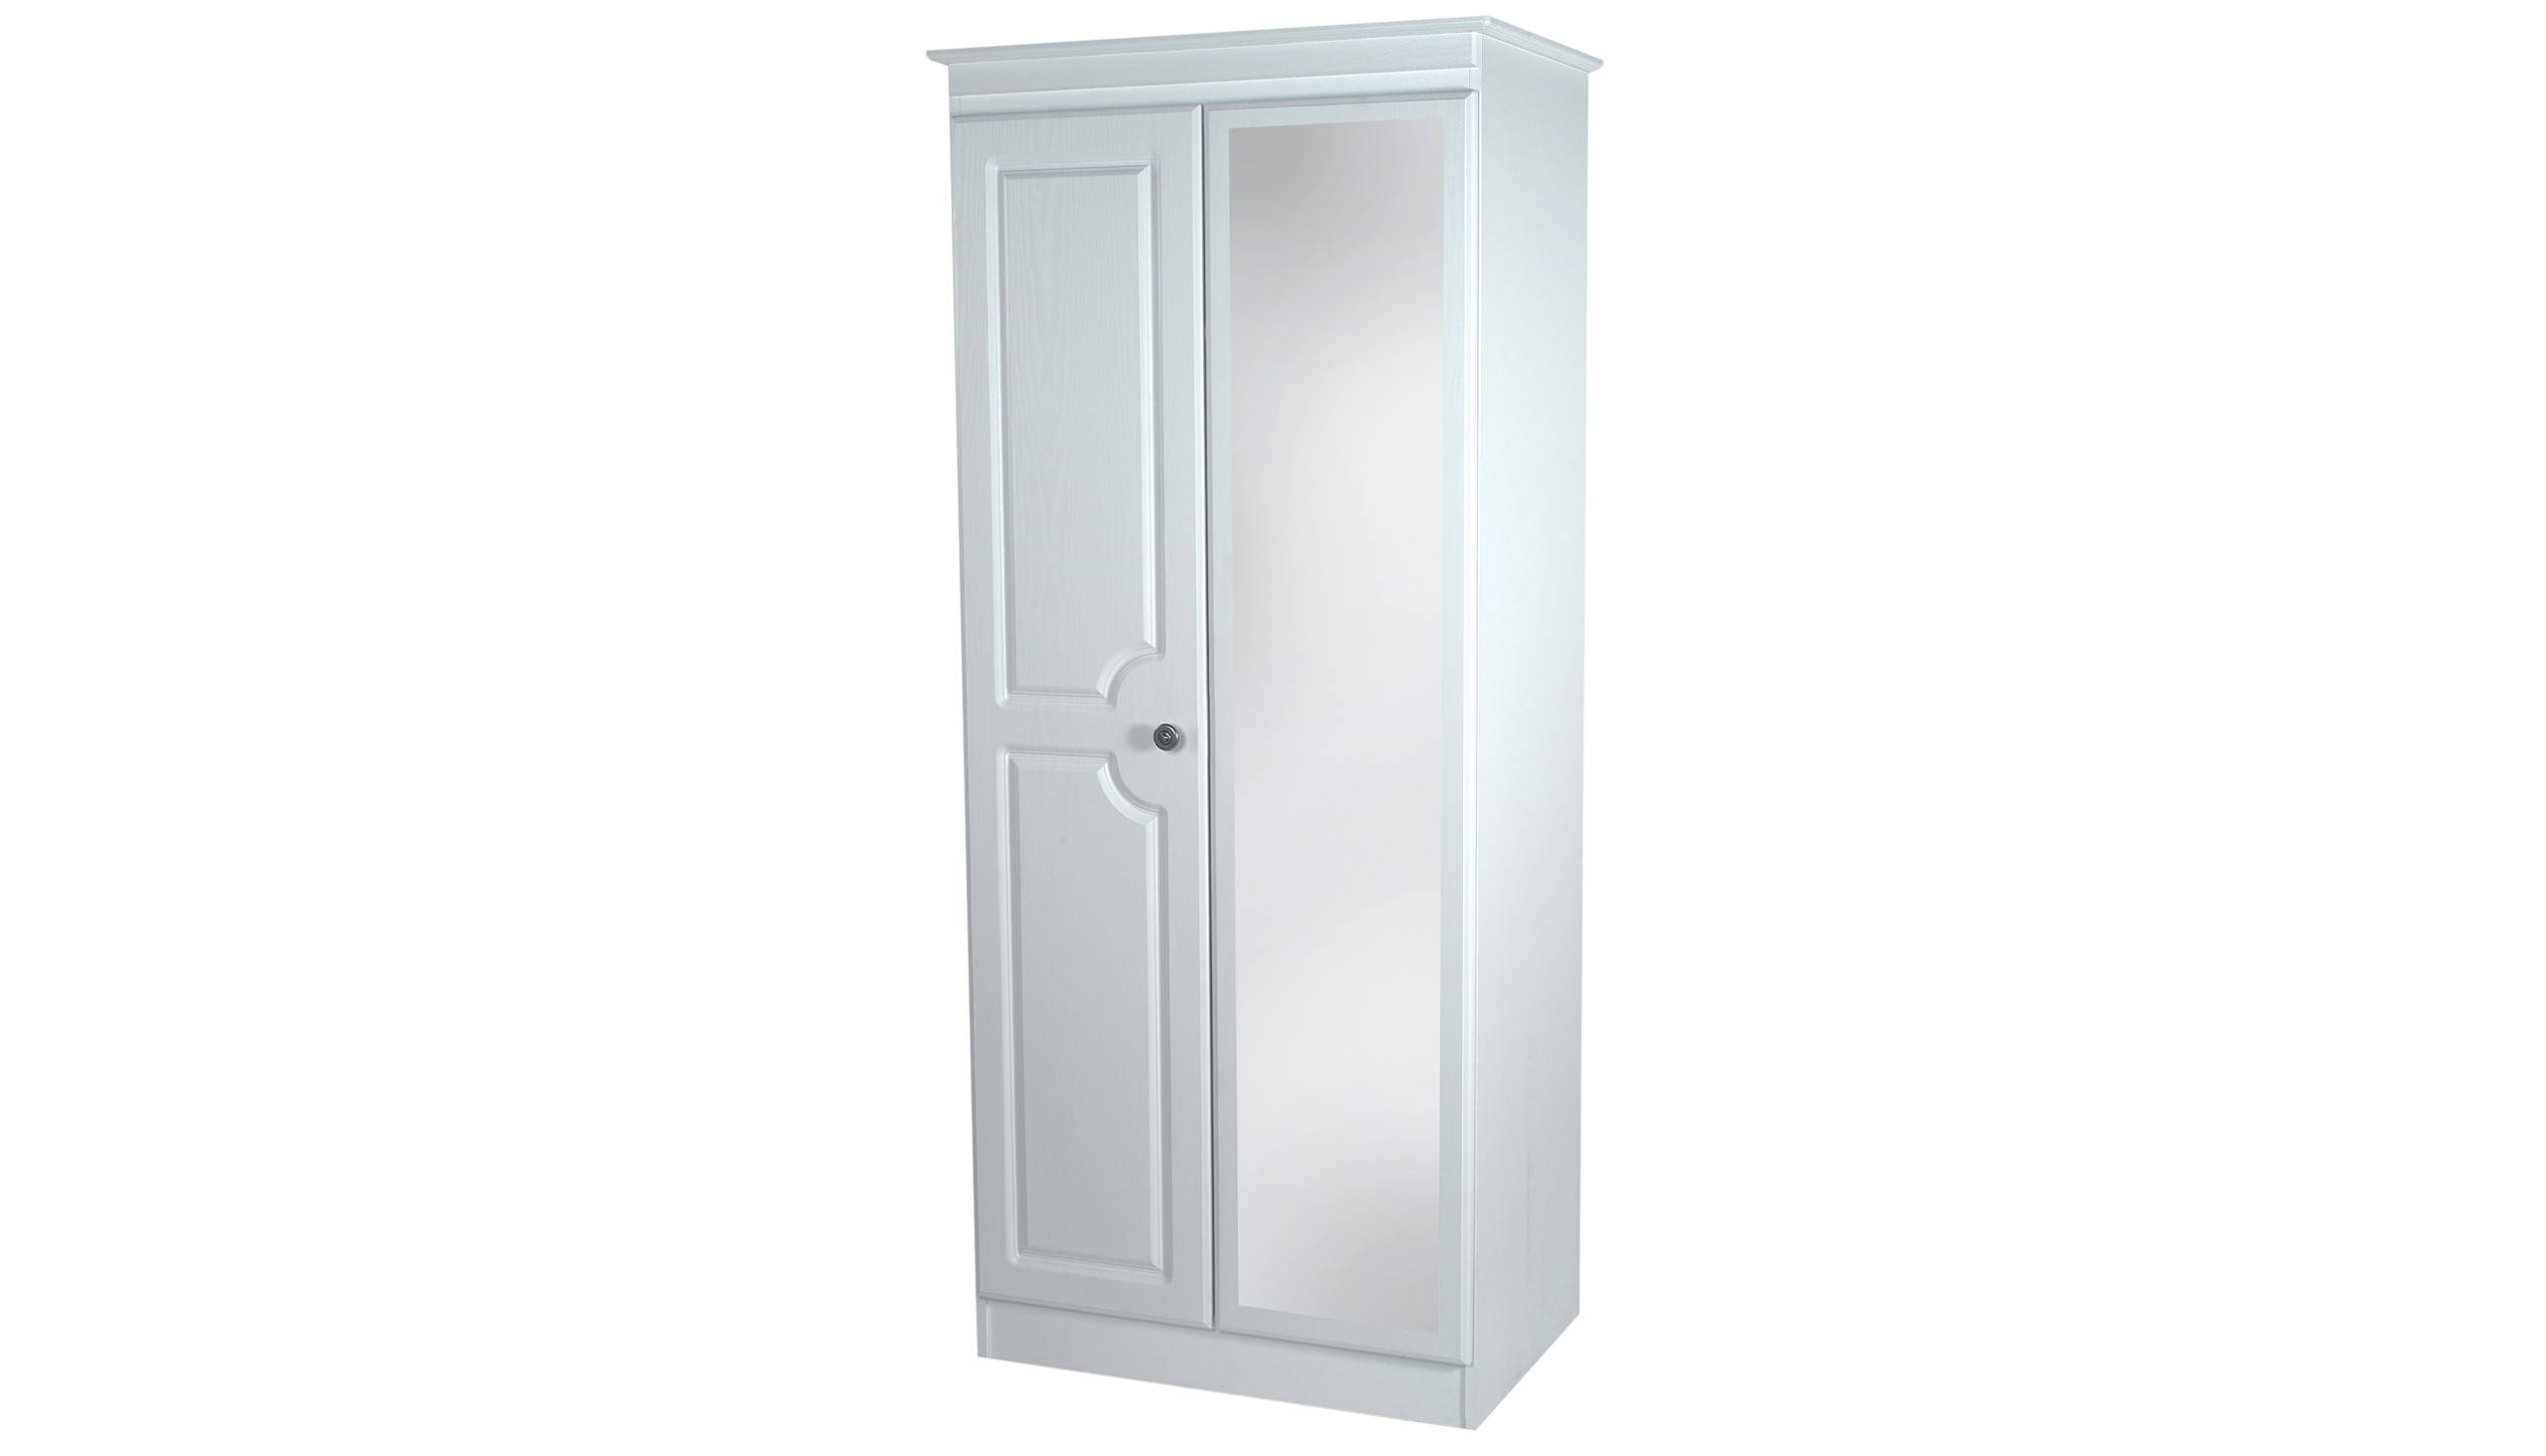 2 Door Mirrored Wardrobe From The Pembroke Range | Ahf Furniture Within Double Mirrored Wardrobes (View 8 of 15)